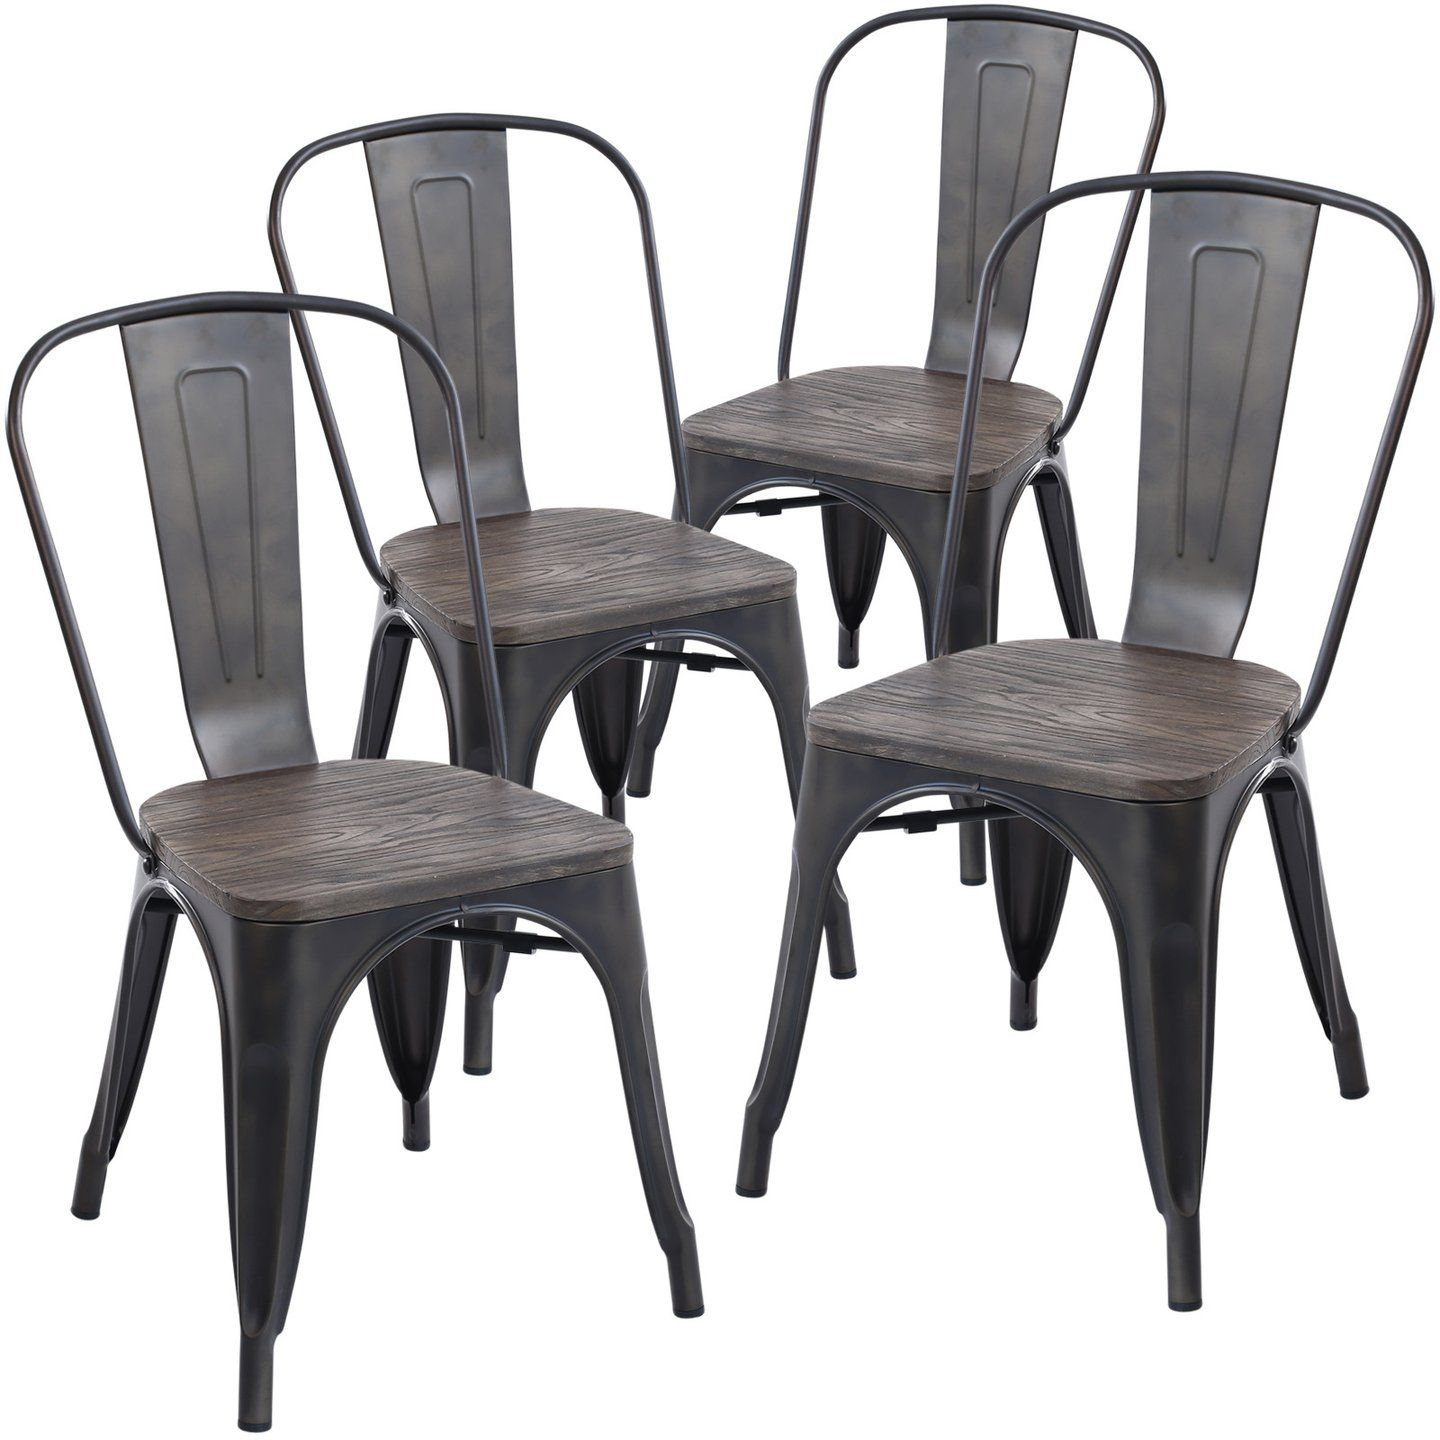 Set of 4 - Trattoria Side Chairs | Side chair and House